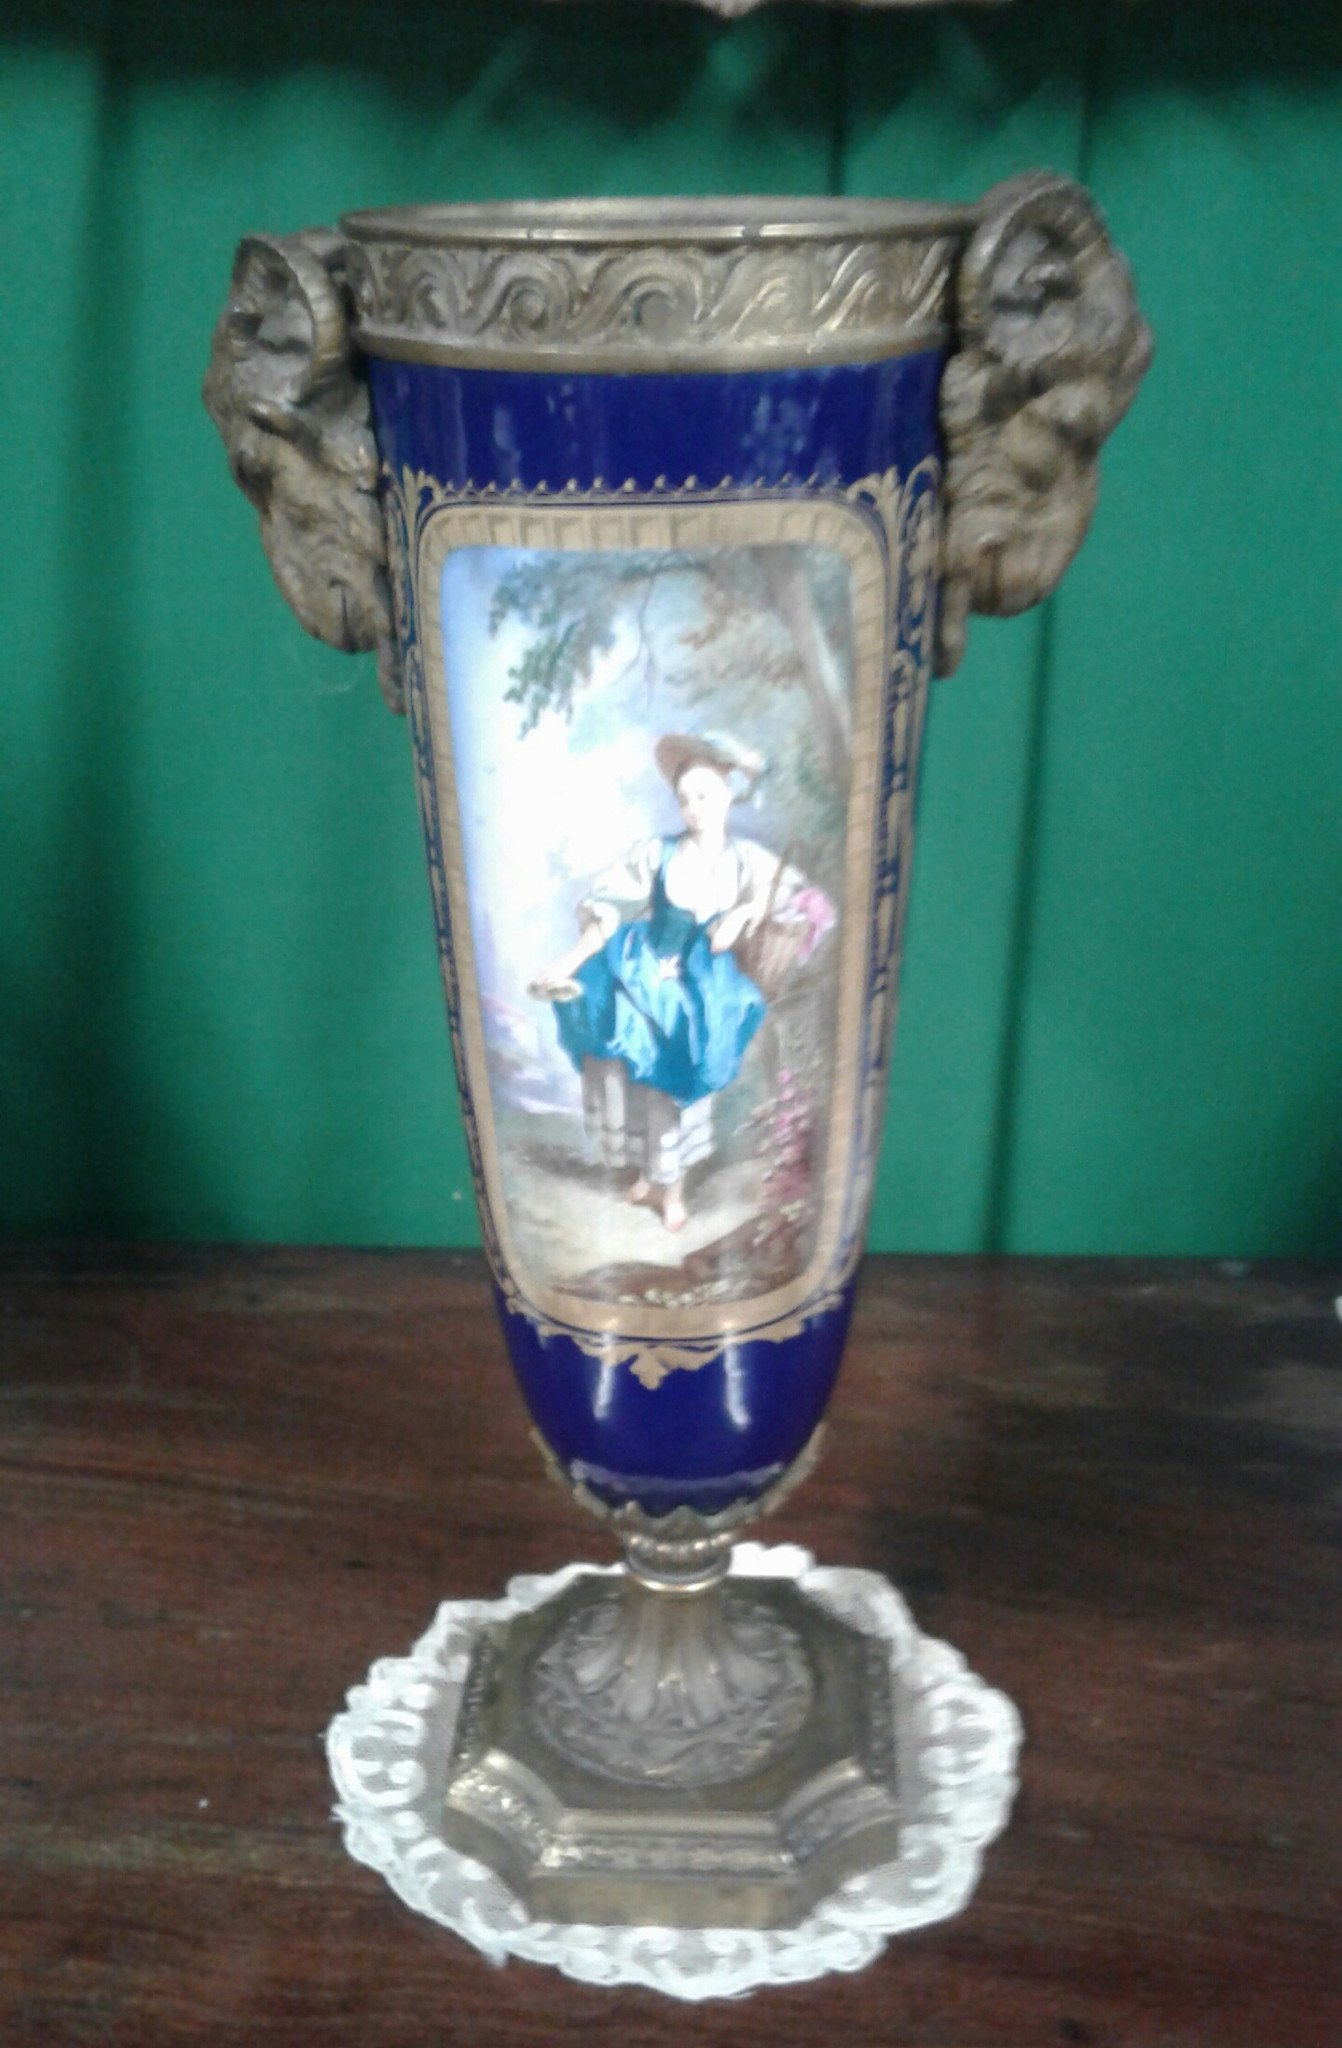 19th century French Sevres style porcelain urn.